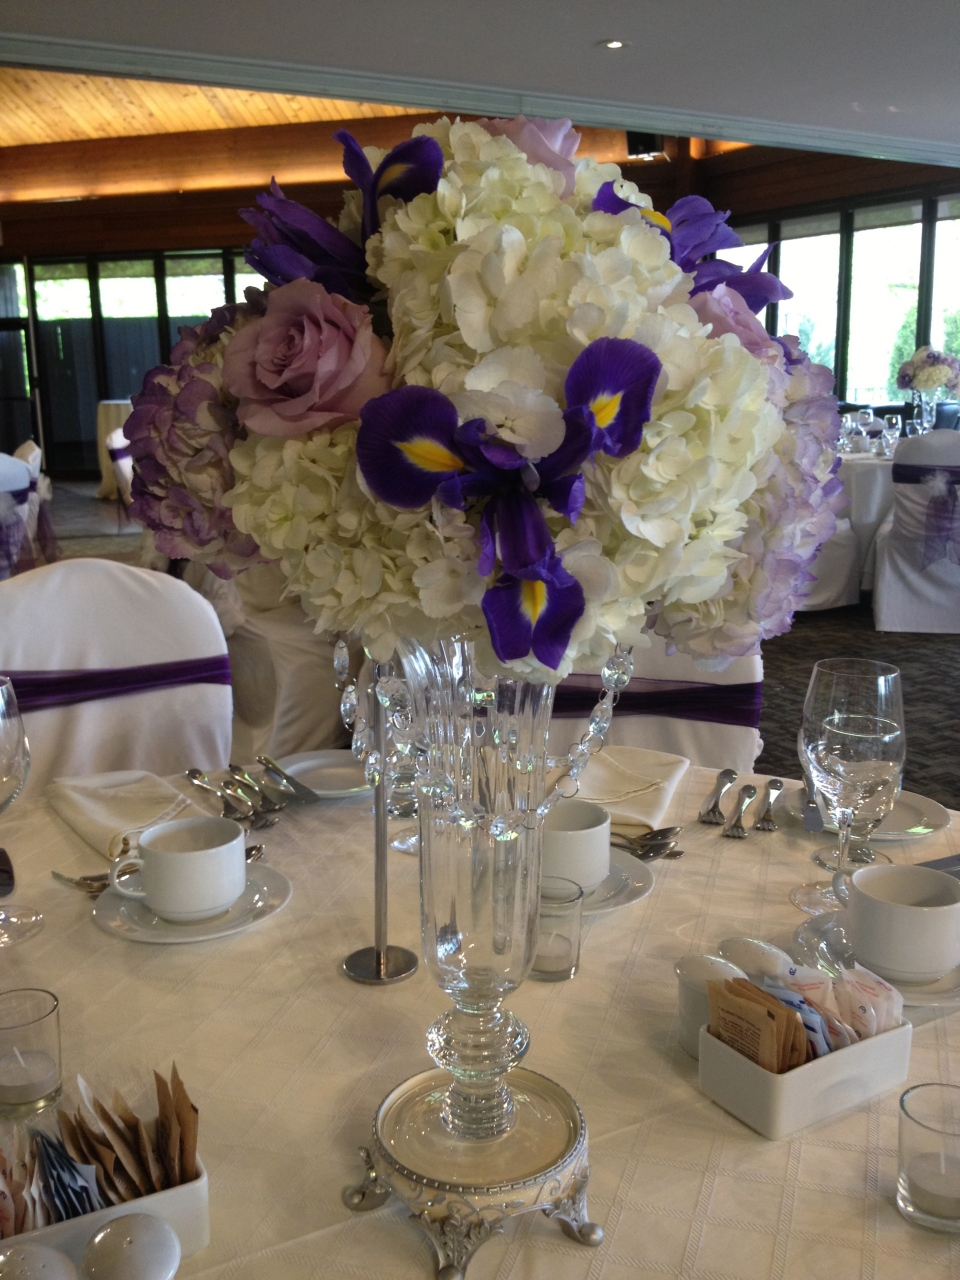 Centerpieces of hydrangea, roses and purple iris